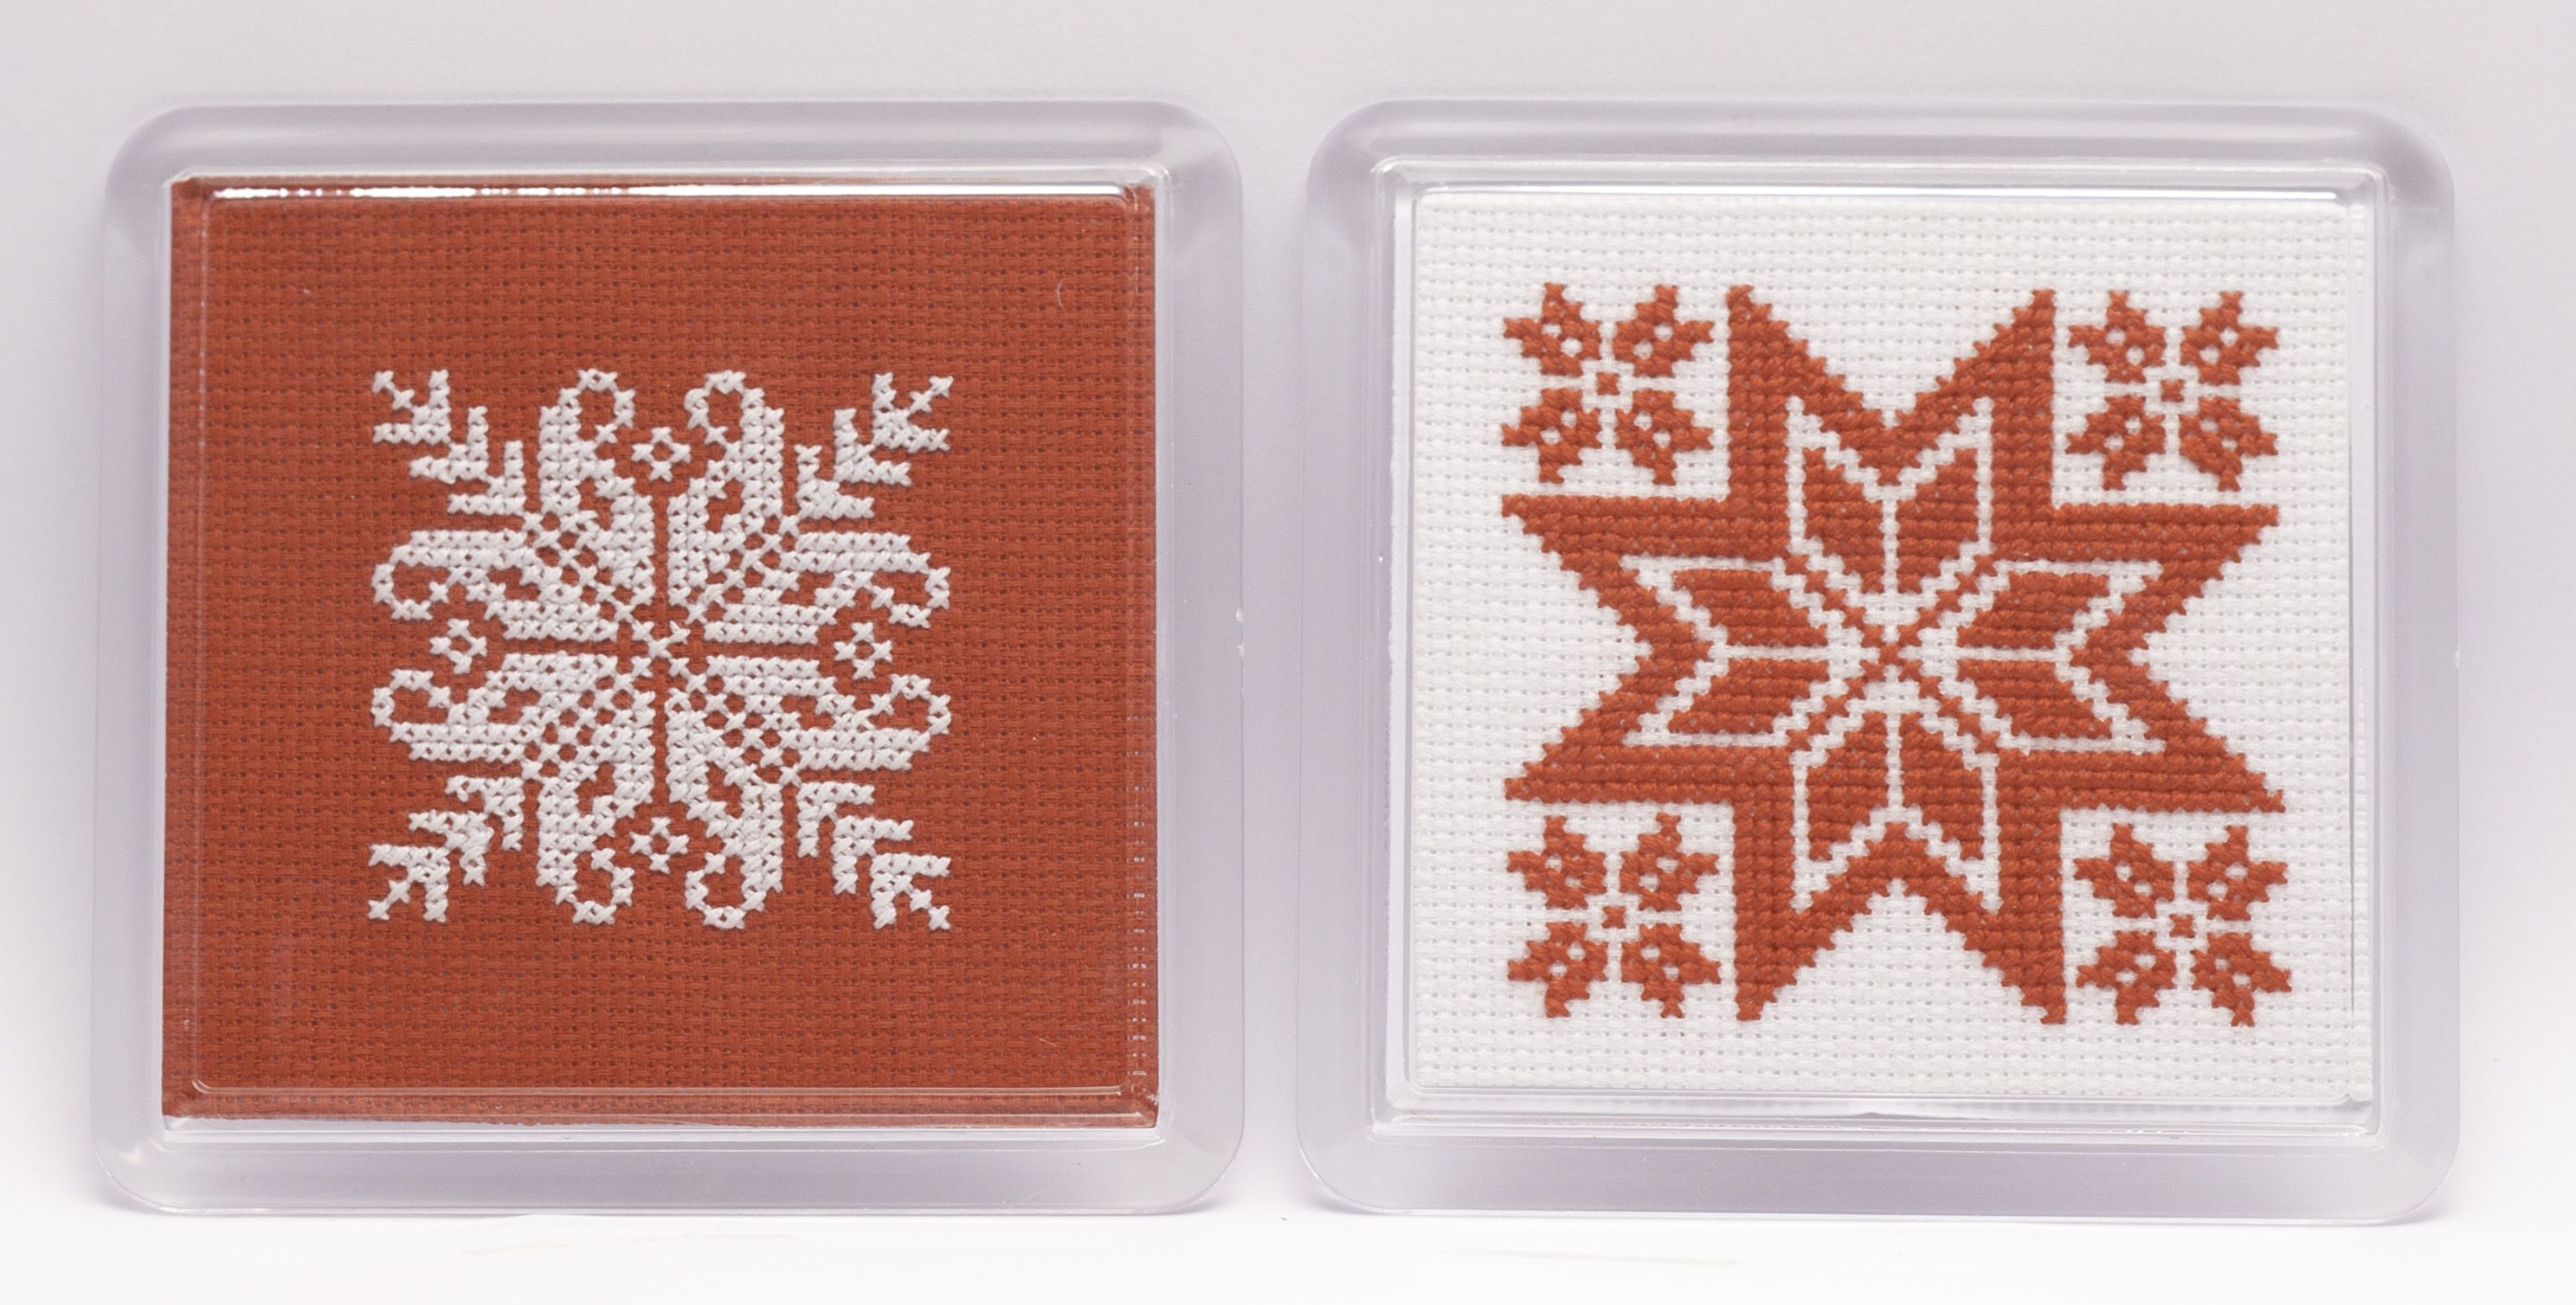 Nordic Christmas homeware cross stitch kit. Perfect gift for yourself or a loved one. Trend led, yet simple to stitch.